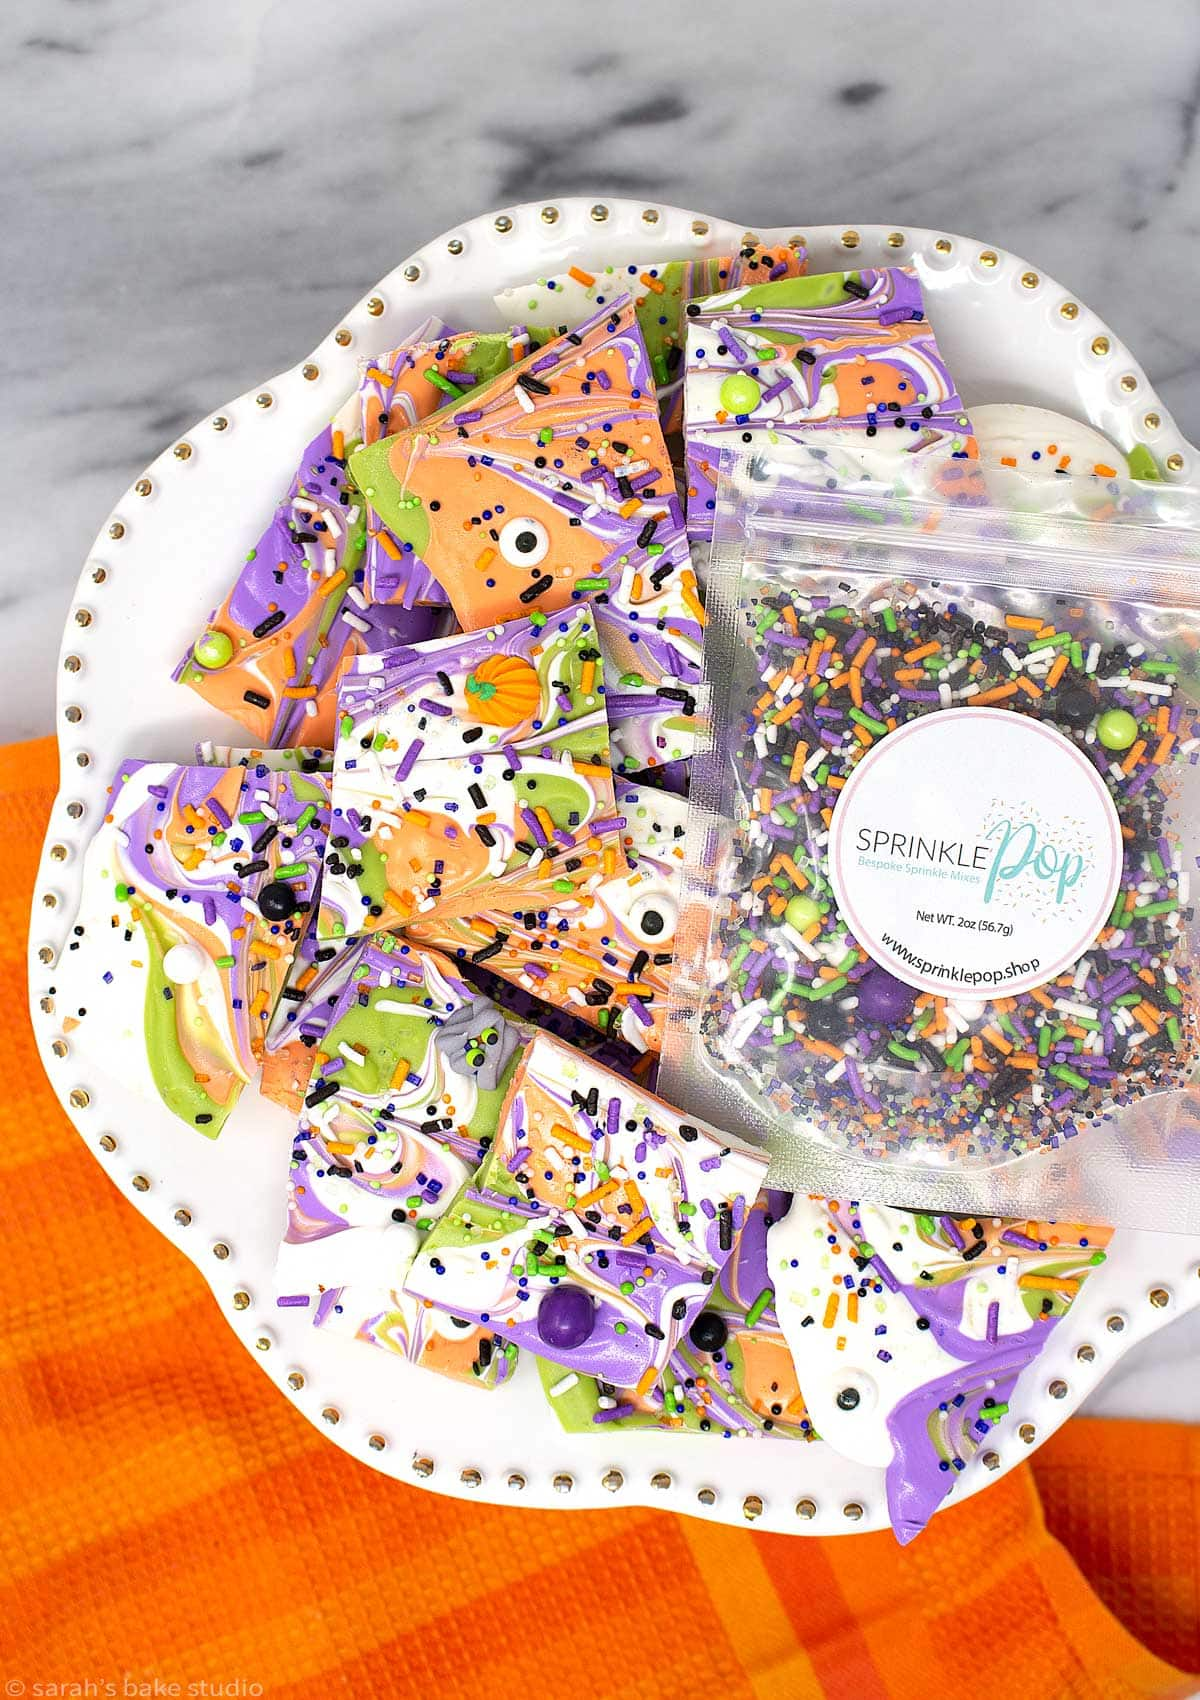 a white cake plate topped with monster mash Halloween bark and a bag of sprinkle pop sprinkles.